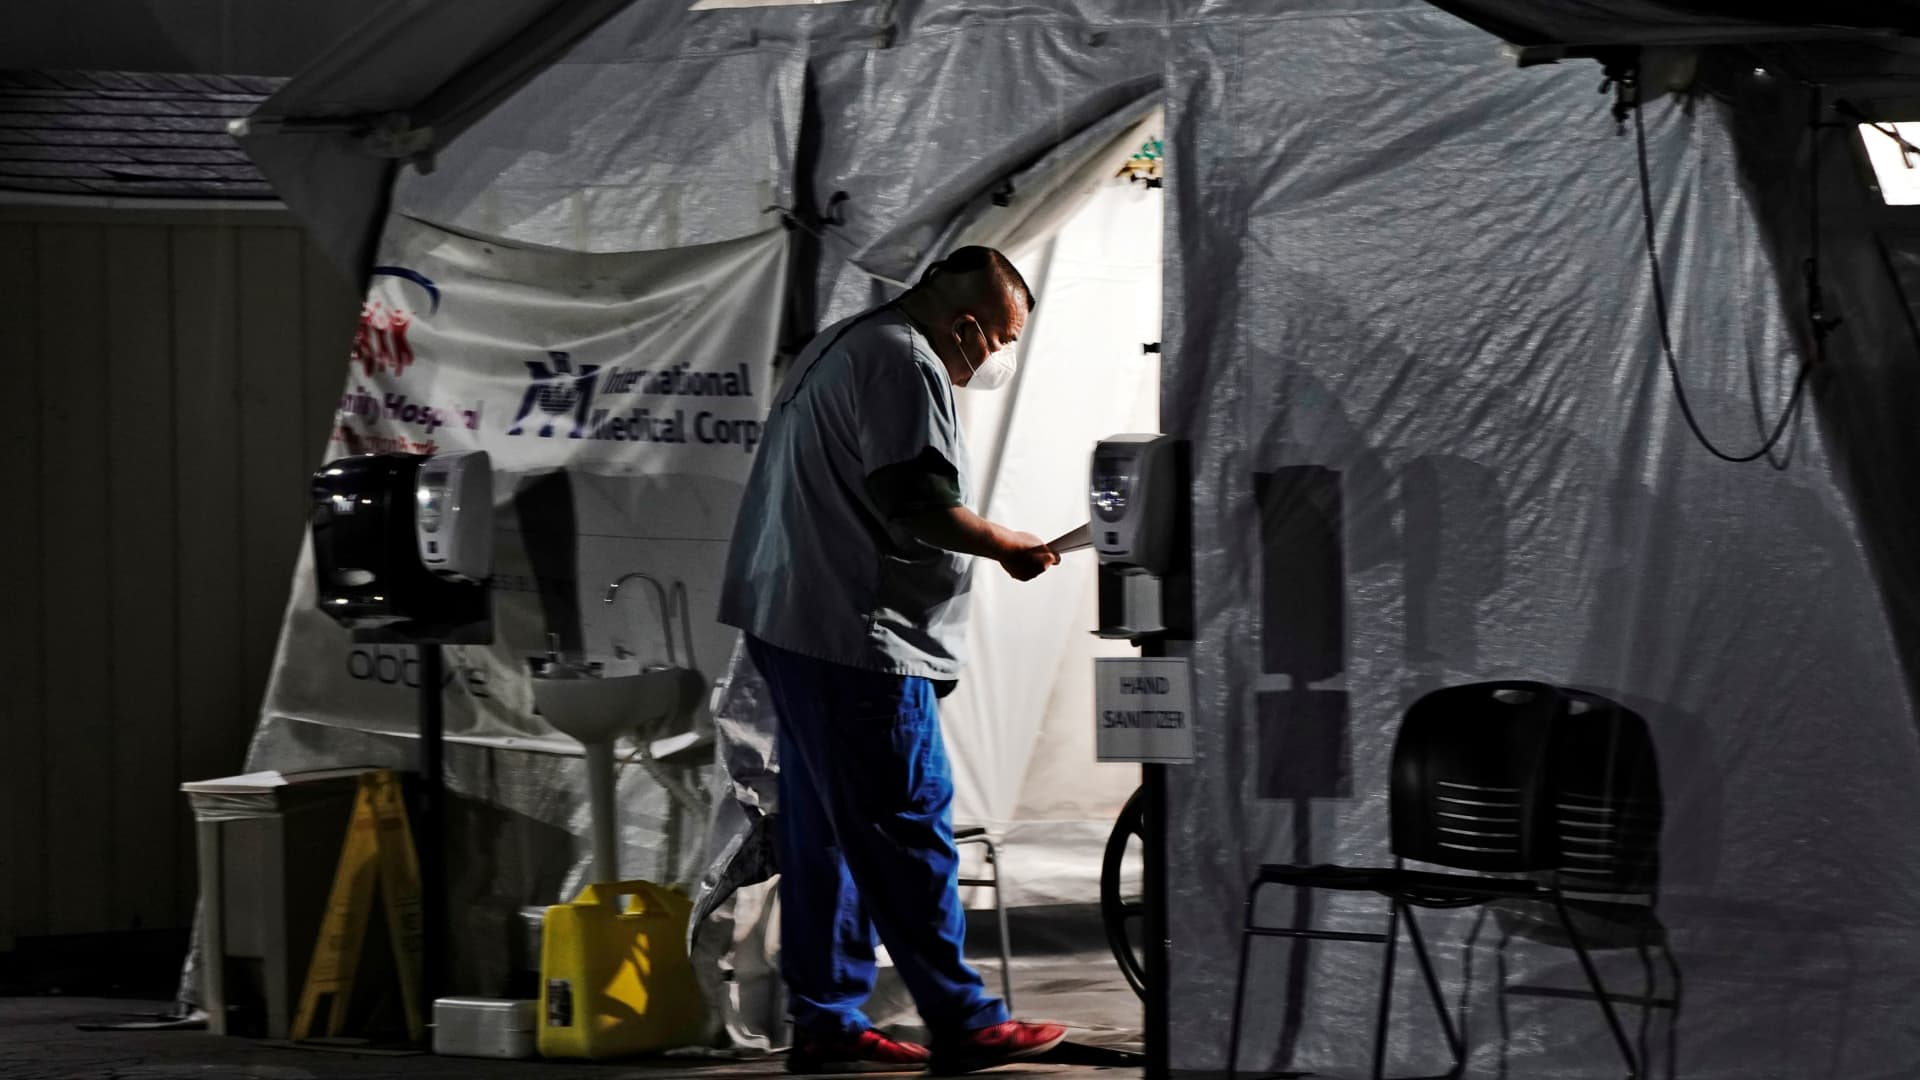 A healthcare worker checks on patients inside an oxygen tent outside the emergency room at the Community Hospital of Huntington Park during a surge in positive coronavirus (COVID-19) cases in Huntington Park, California, December 29, 2020.